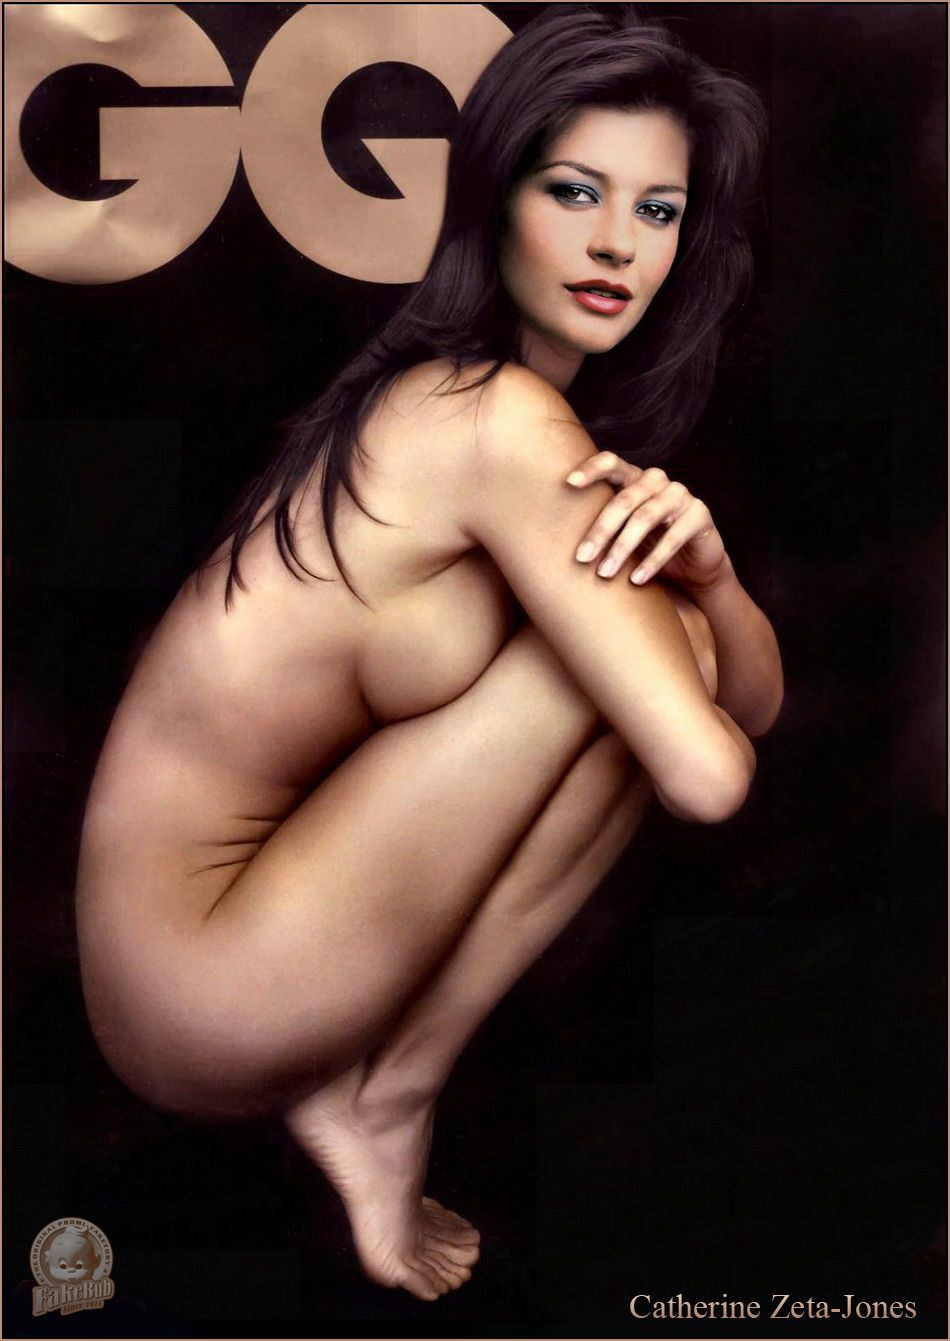 Naked Pictures Of Catherine Zeta Jones 48